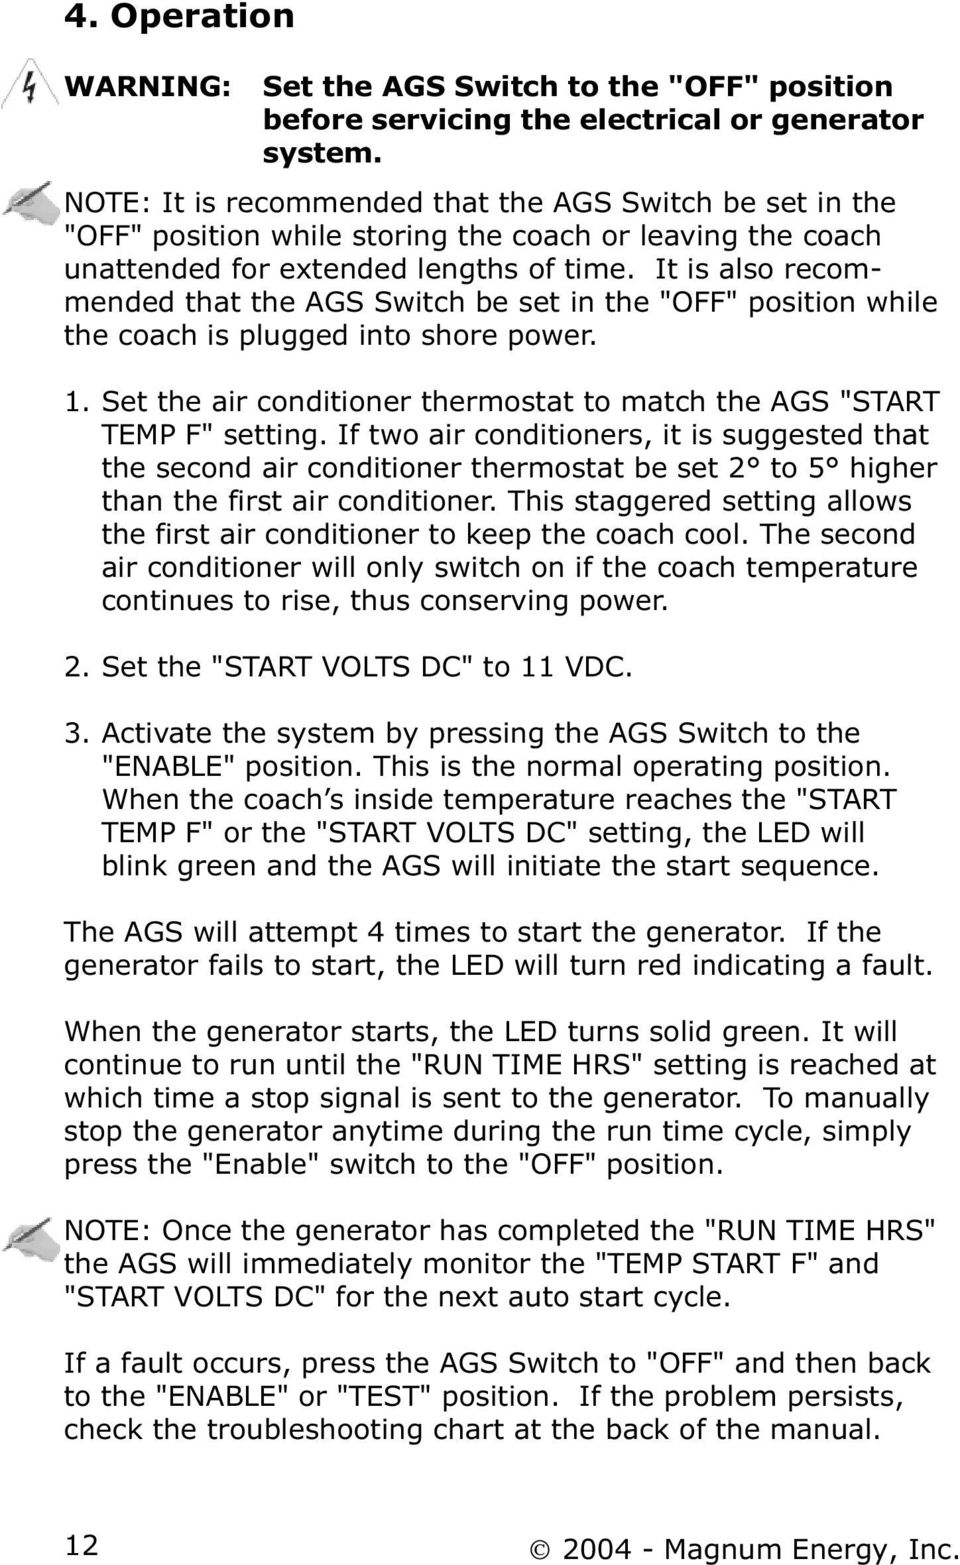 "It is also recommended that the AGS Switch be set in the ""OFF"" position while the coach is plugged into shore power. 1. Set the air conditioner thermostat to match the AGS ""START TEMP F"" setting."